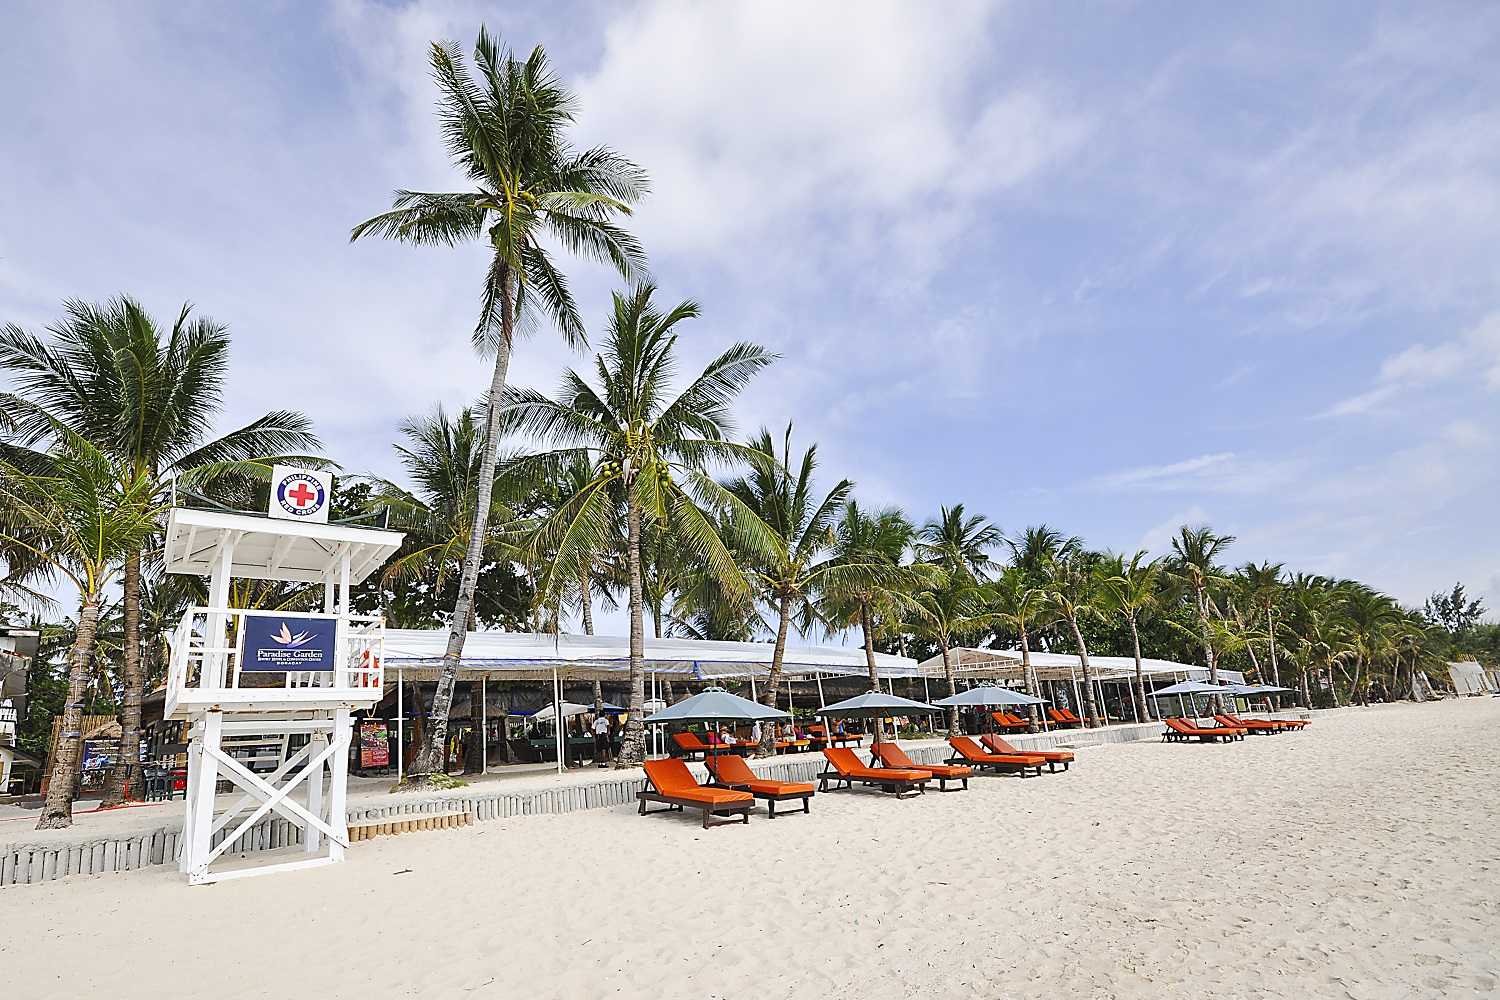 Paradise garden resort hotel and convention center in boracay island